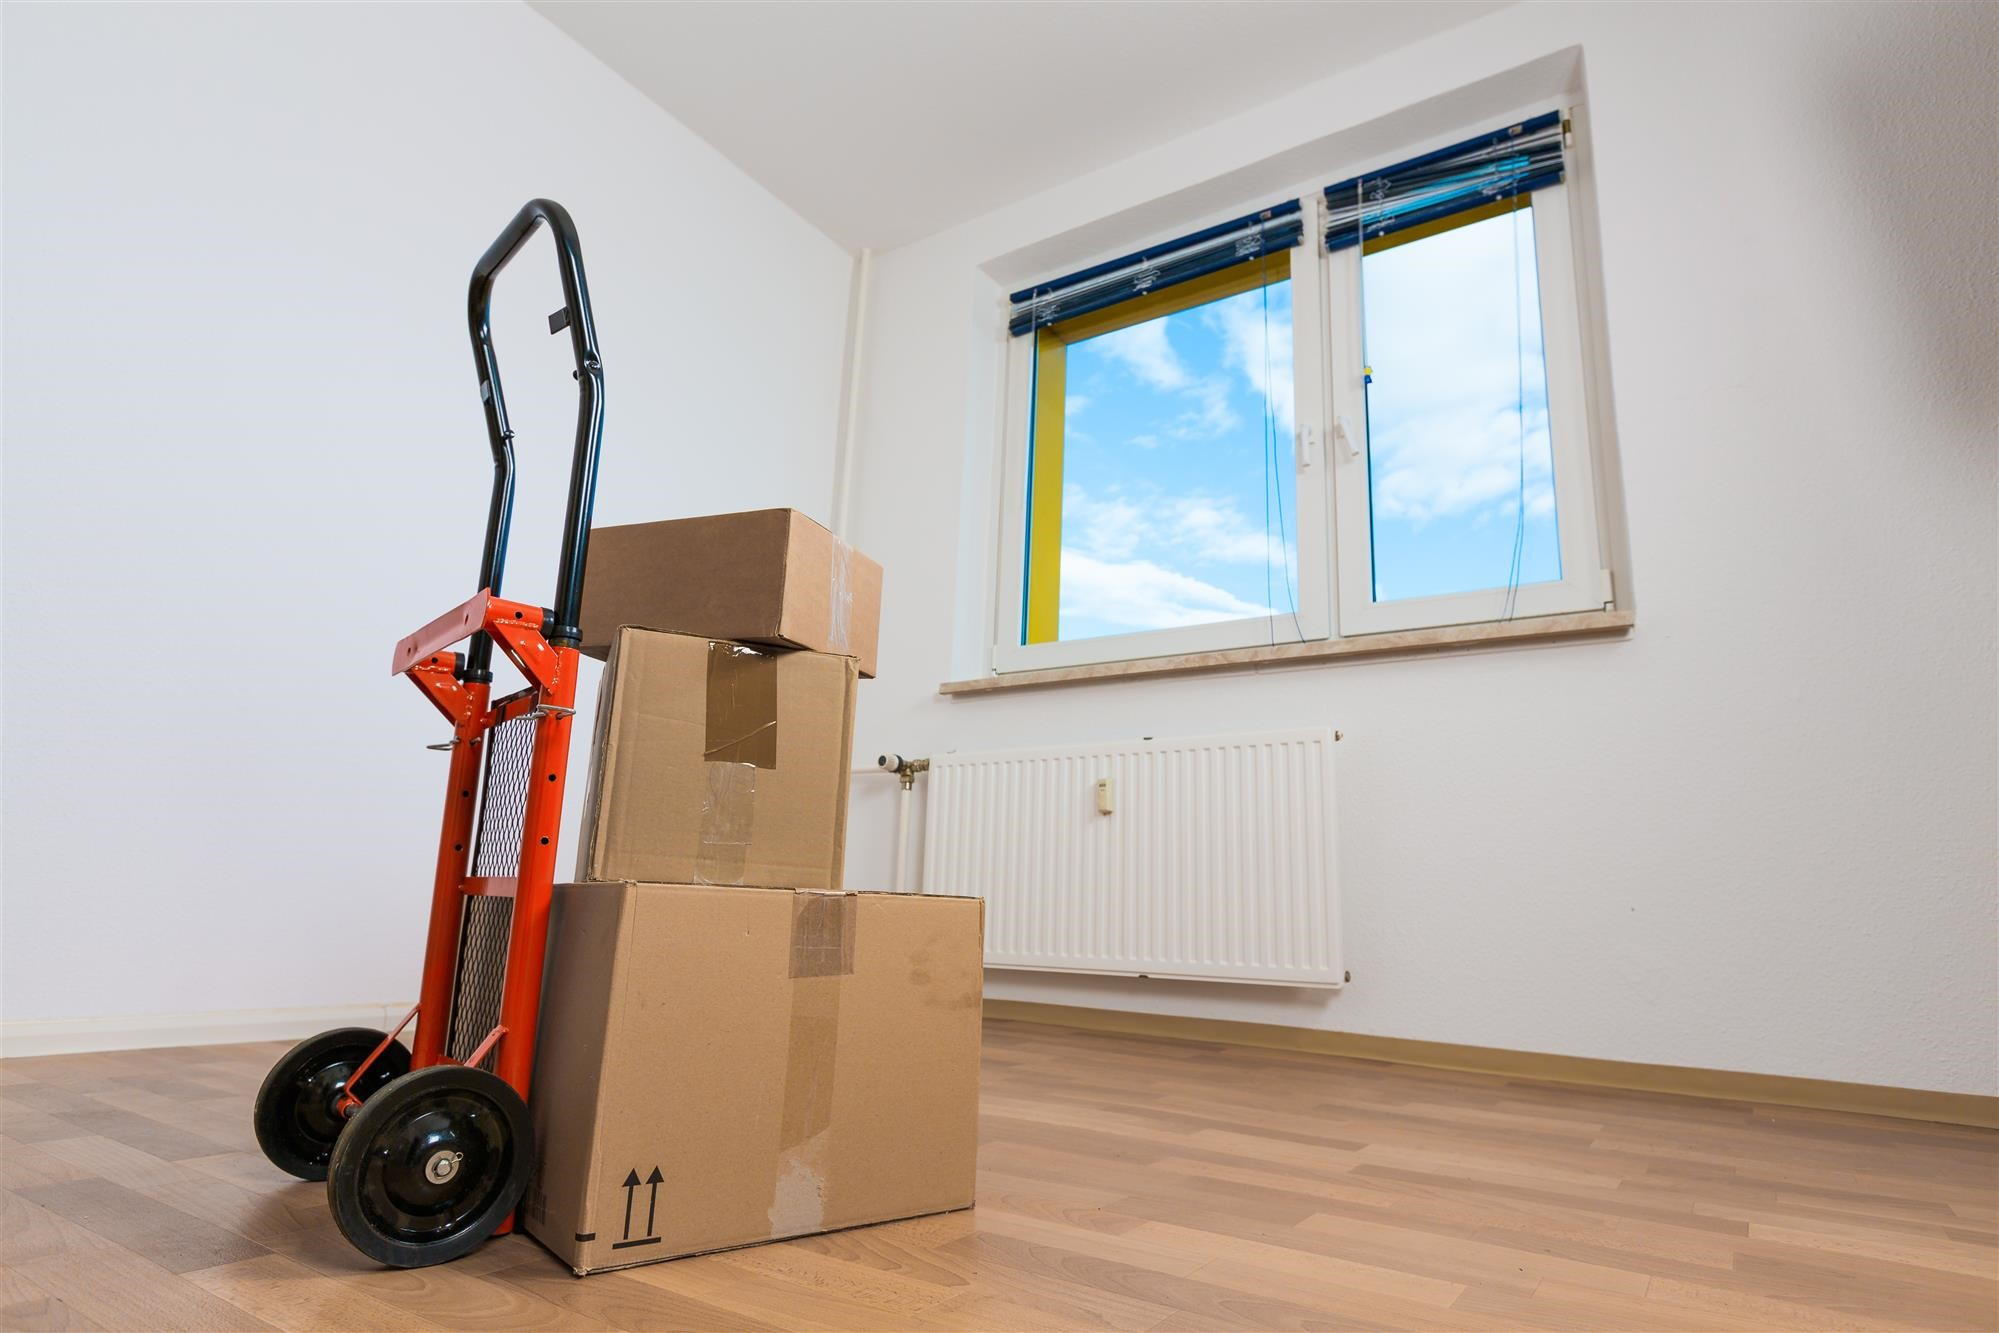 The Homebuyer's Moving Checklist